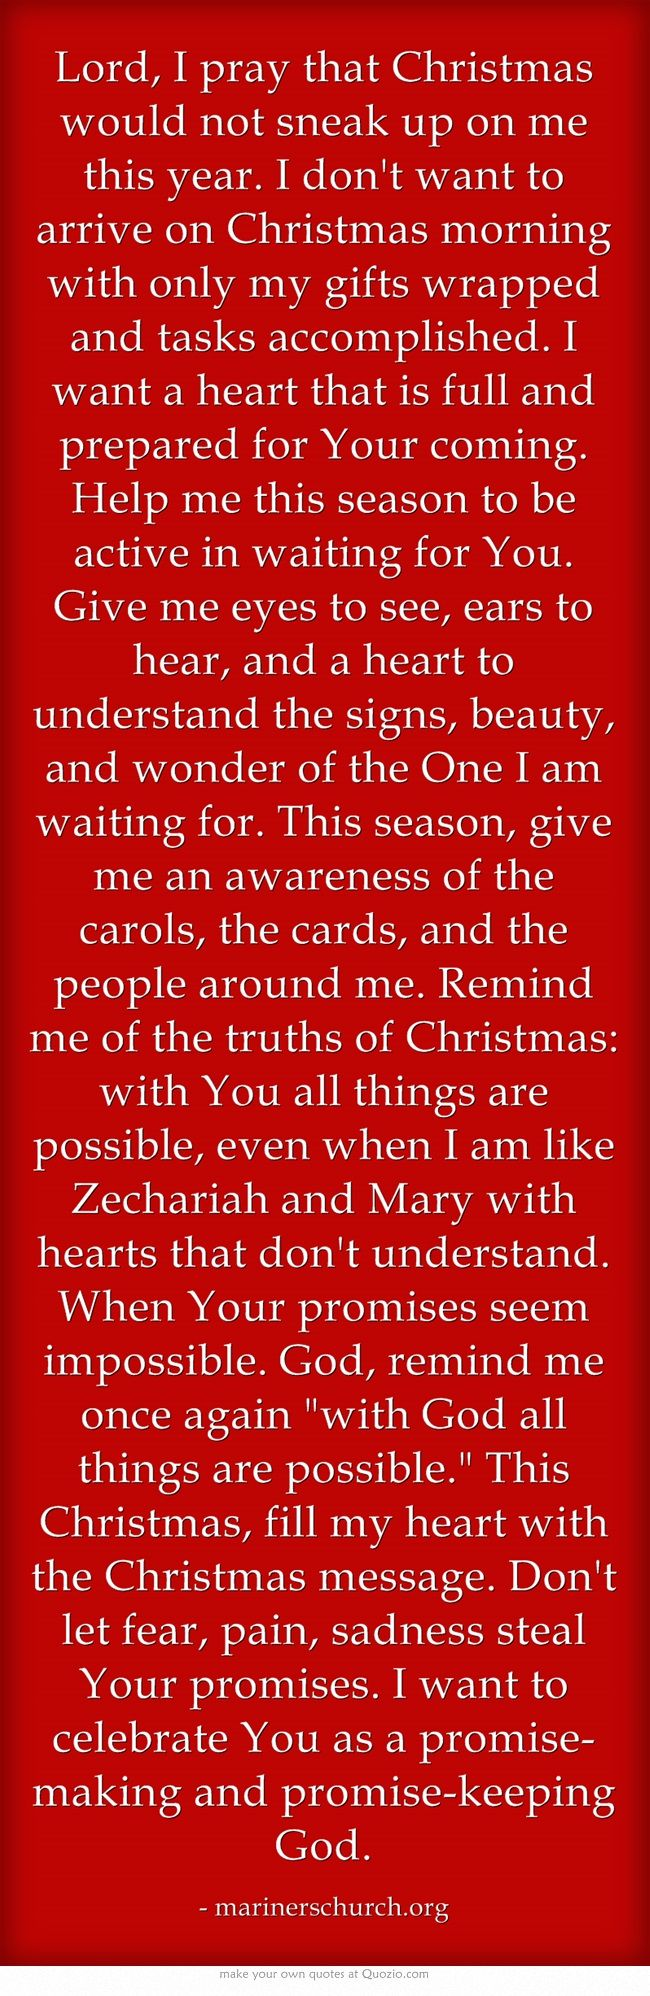 Lord, I pray that Christmas would not sneak up on me this year. I don't want to arrive on Christmas morning with only my gifts wrapped and tasks accomplished. I want a heart that is full and prepared for Your coming. Help me this season to be active in waiting for You. Give me eyes to see, ears to hear, and a heart to understand the signs, beauty, and wonder of the One I am waiting for. This season, give me an awareness of the carols, the cards, and the people around me....: